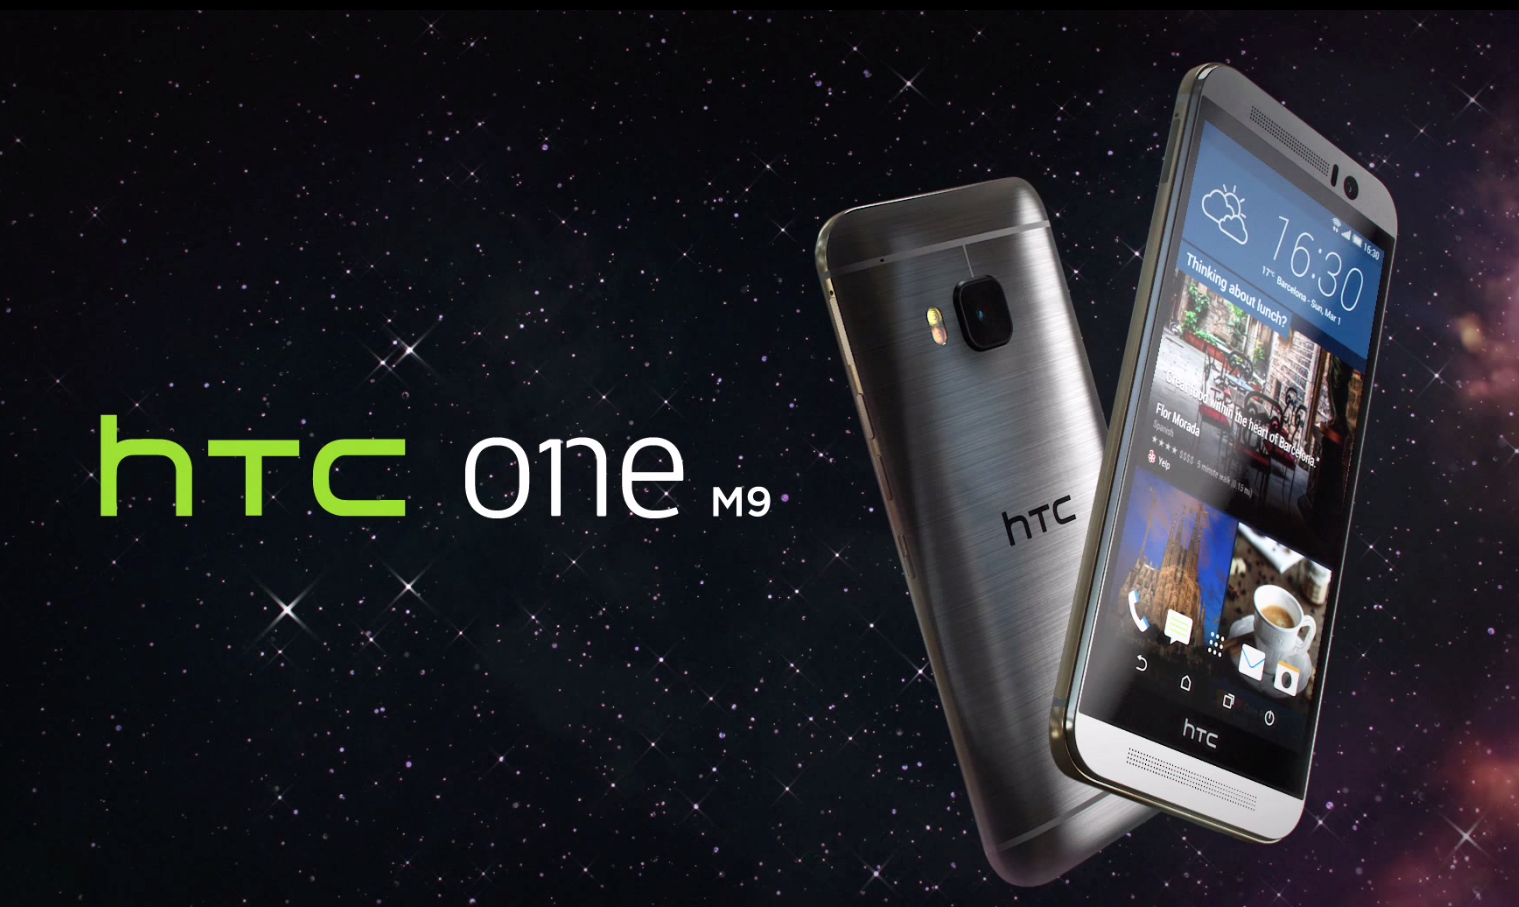 htc one m9 hlavni